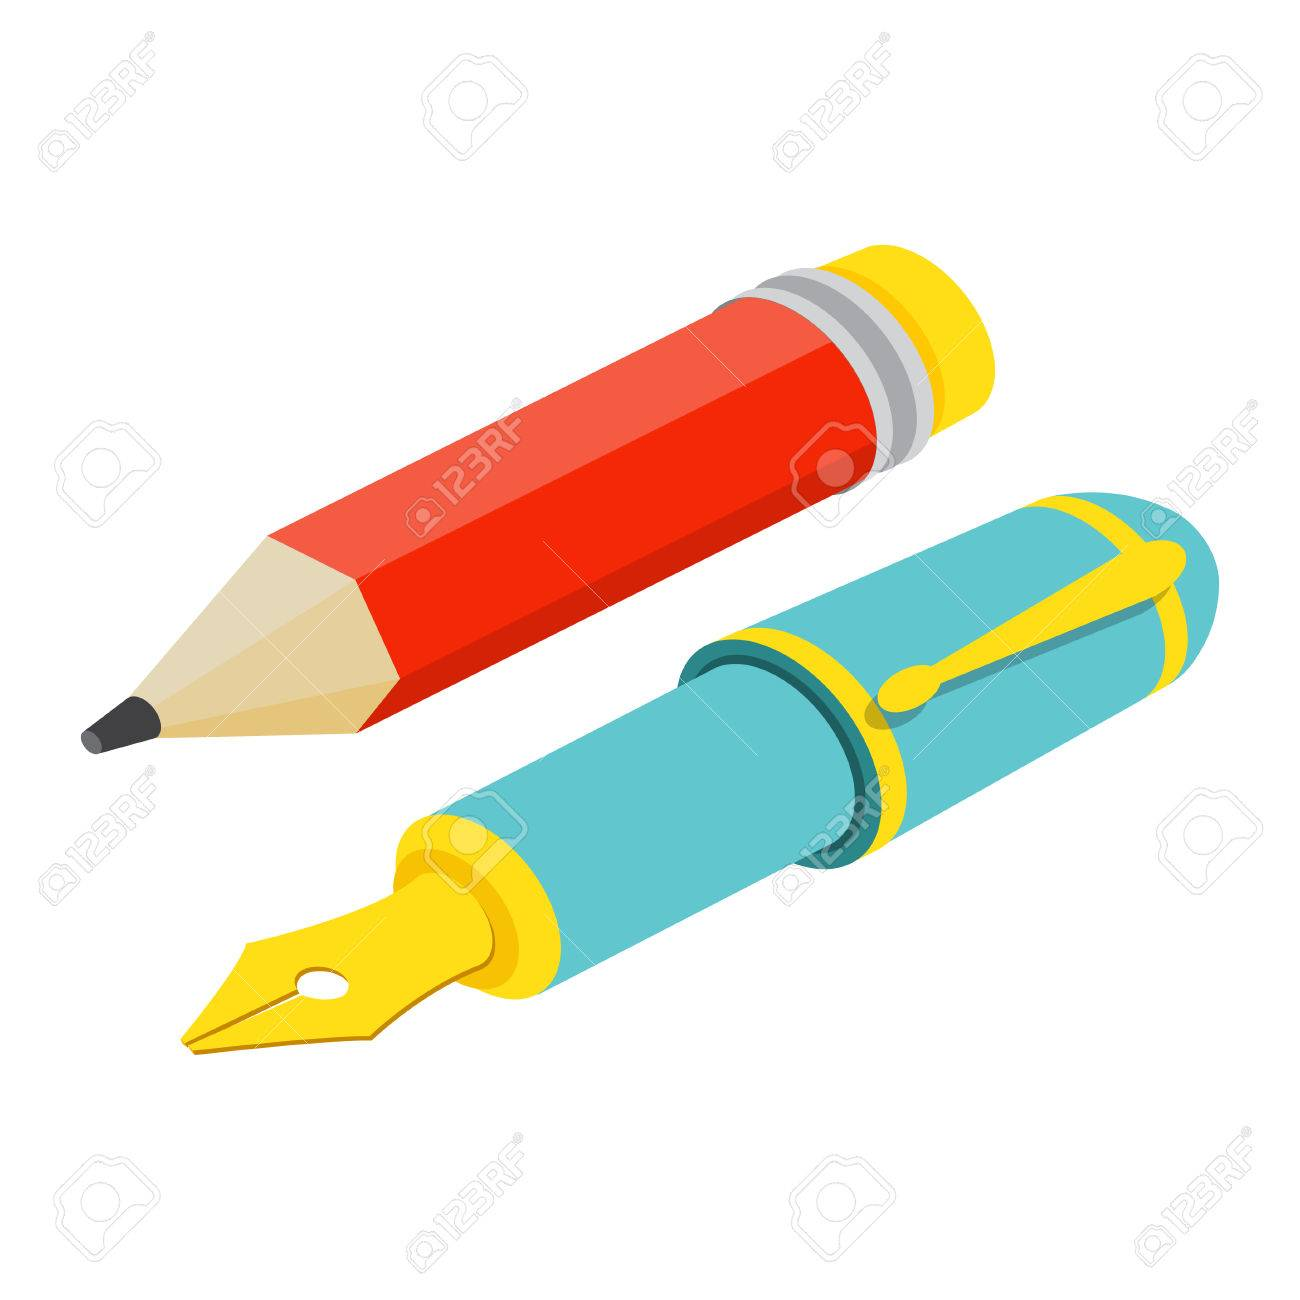 Isometric fountain pen and pencil on white background. For web design and application interface, also useful for infographics.Vector illustration. - 54724908